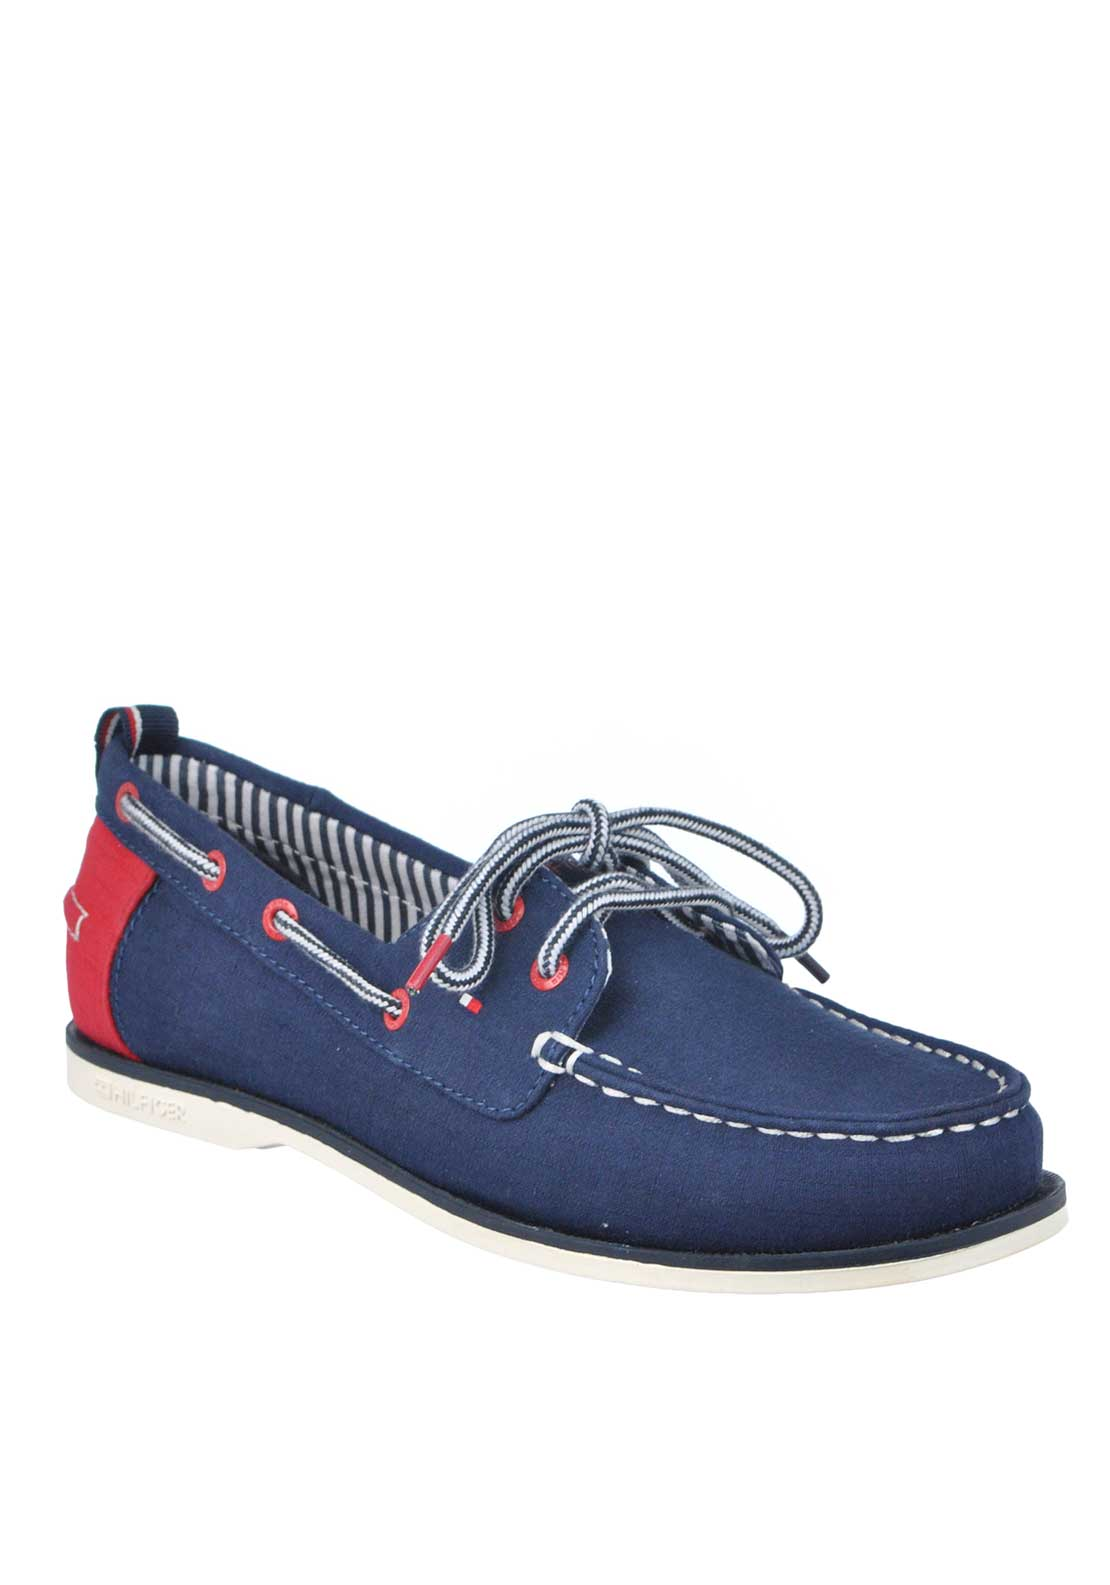 Tommy Hilfiger Canvas Laced Loafers, Navy